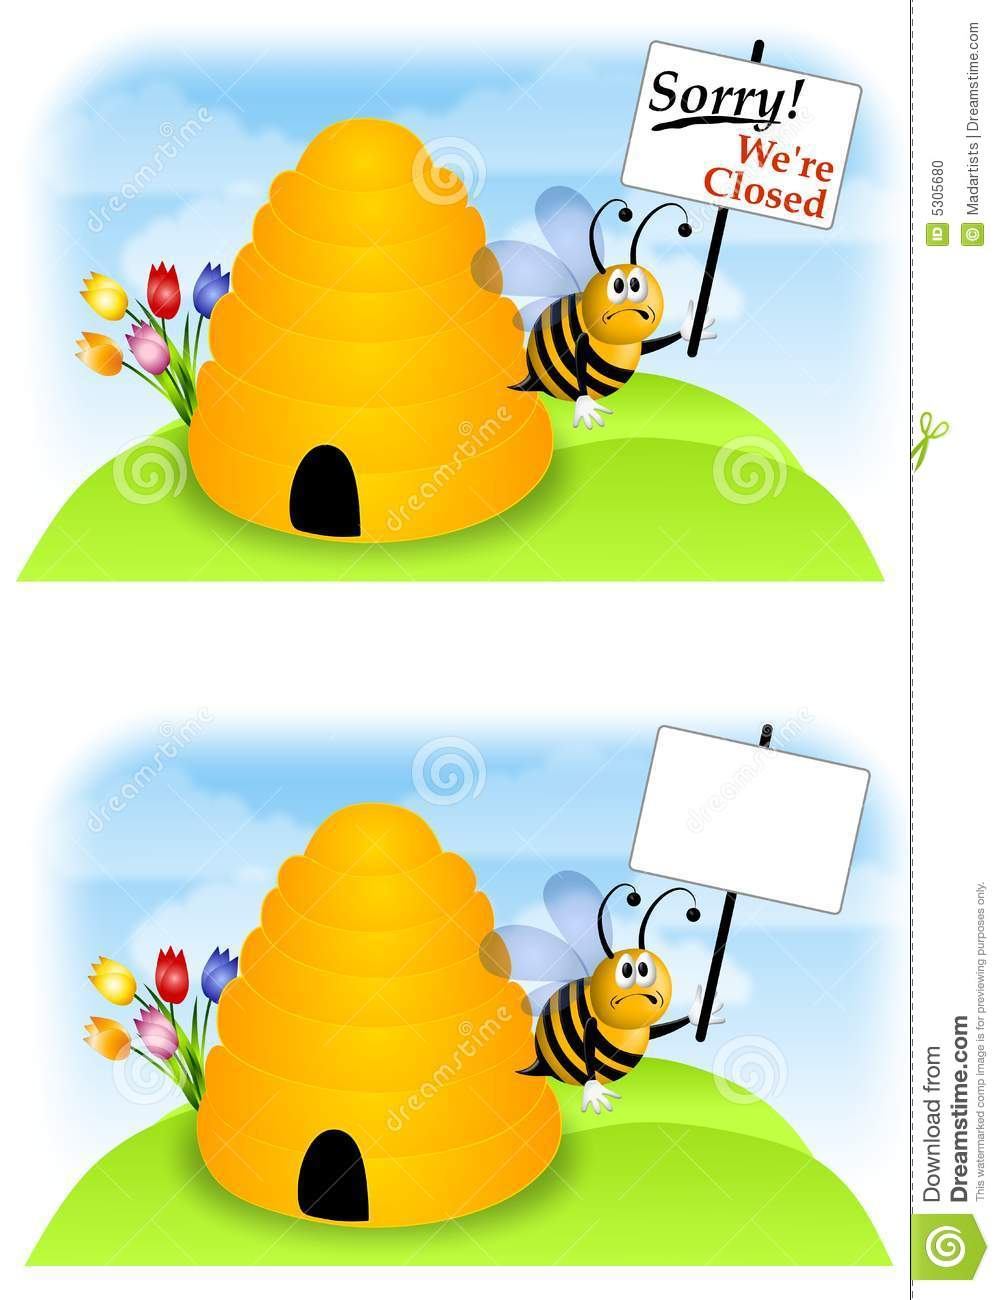 bees going out of business stock photo image 5305680